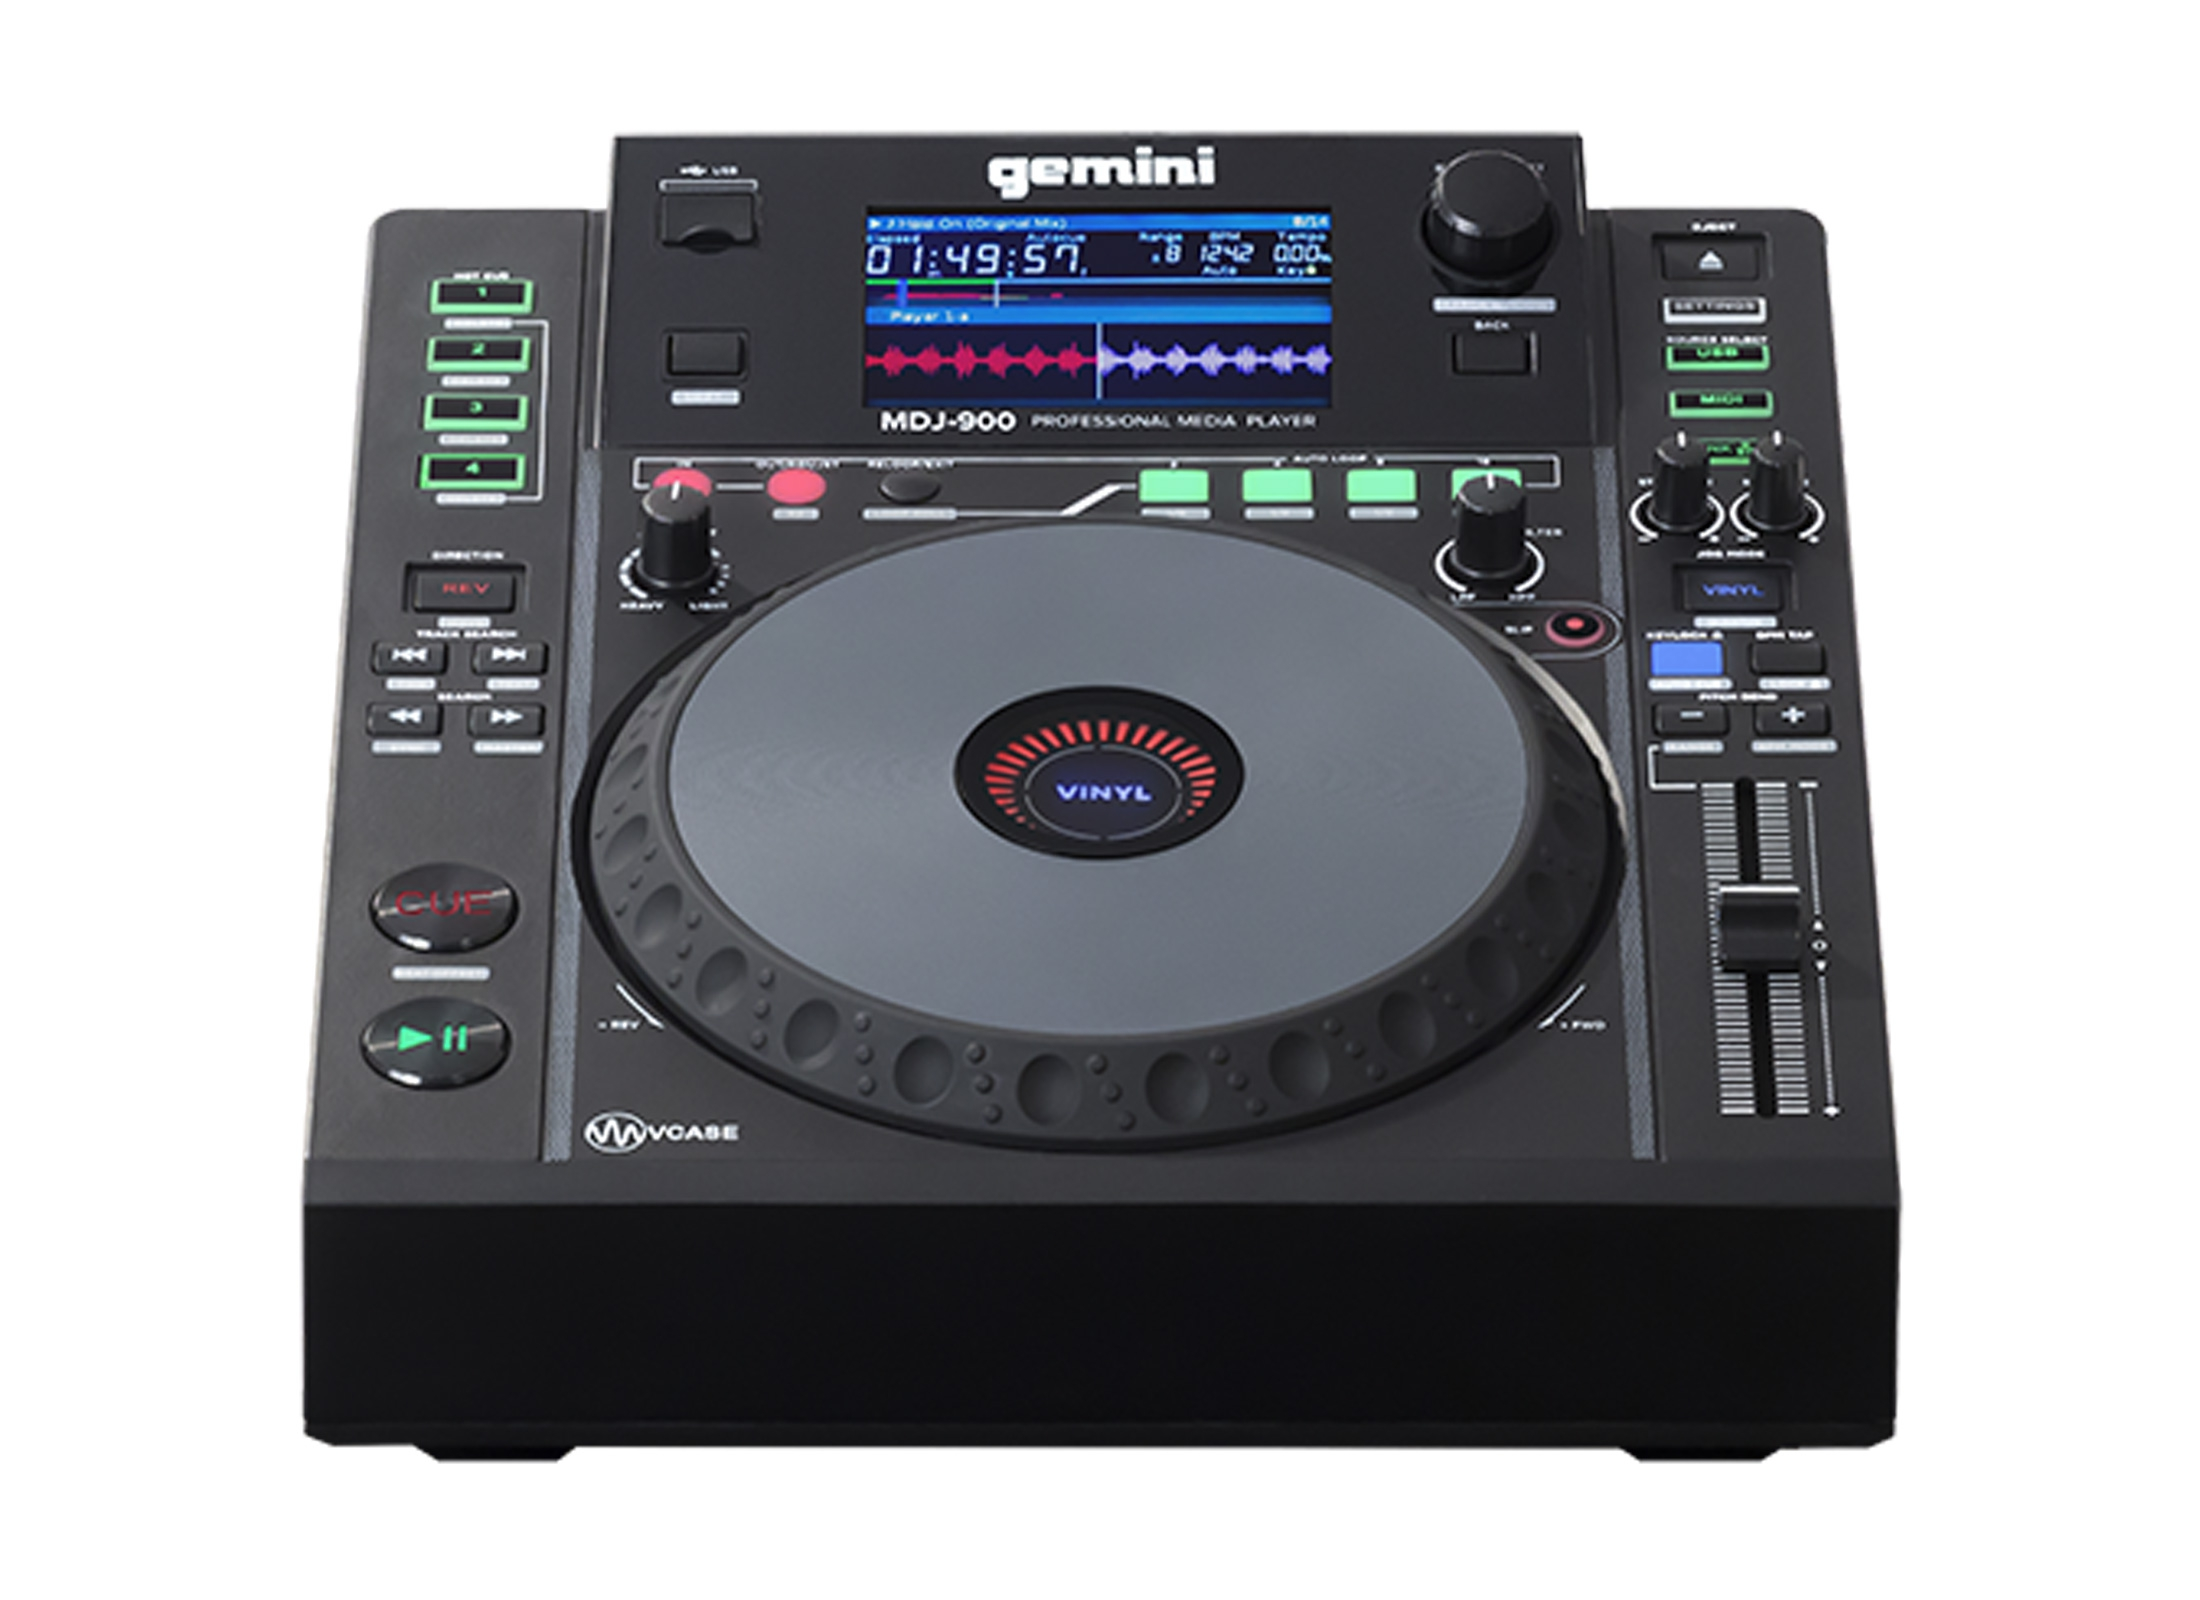 Gemini MDJ 900 CD MP3 Player Online At Low Prices At Huss Light